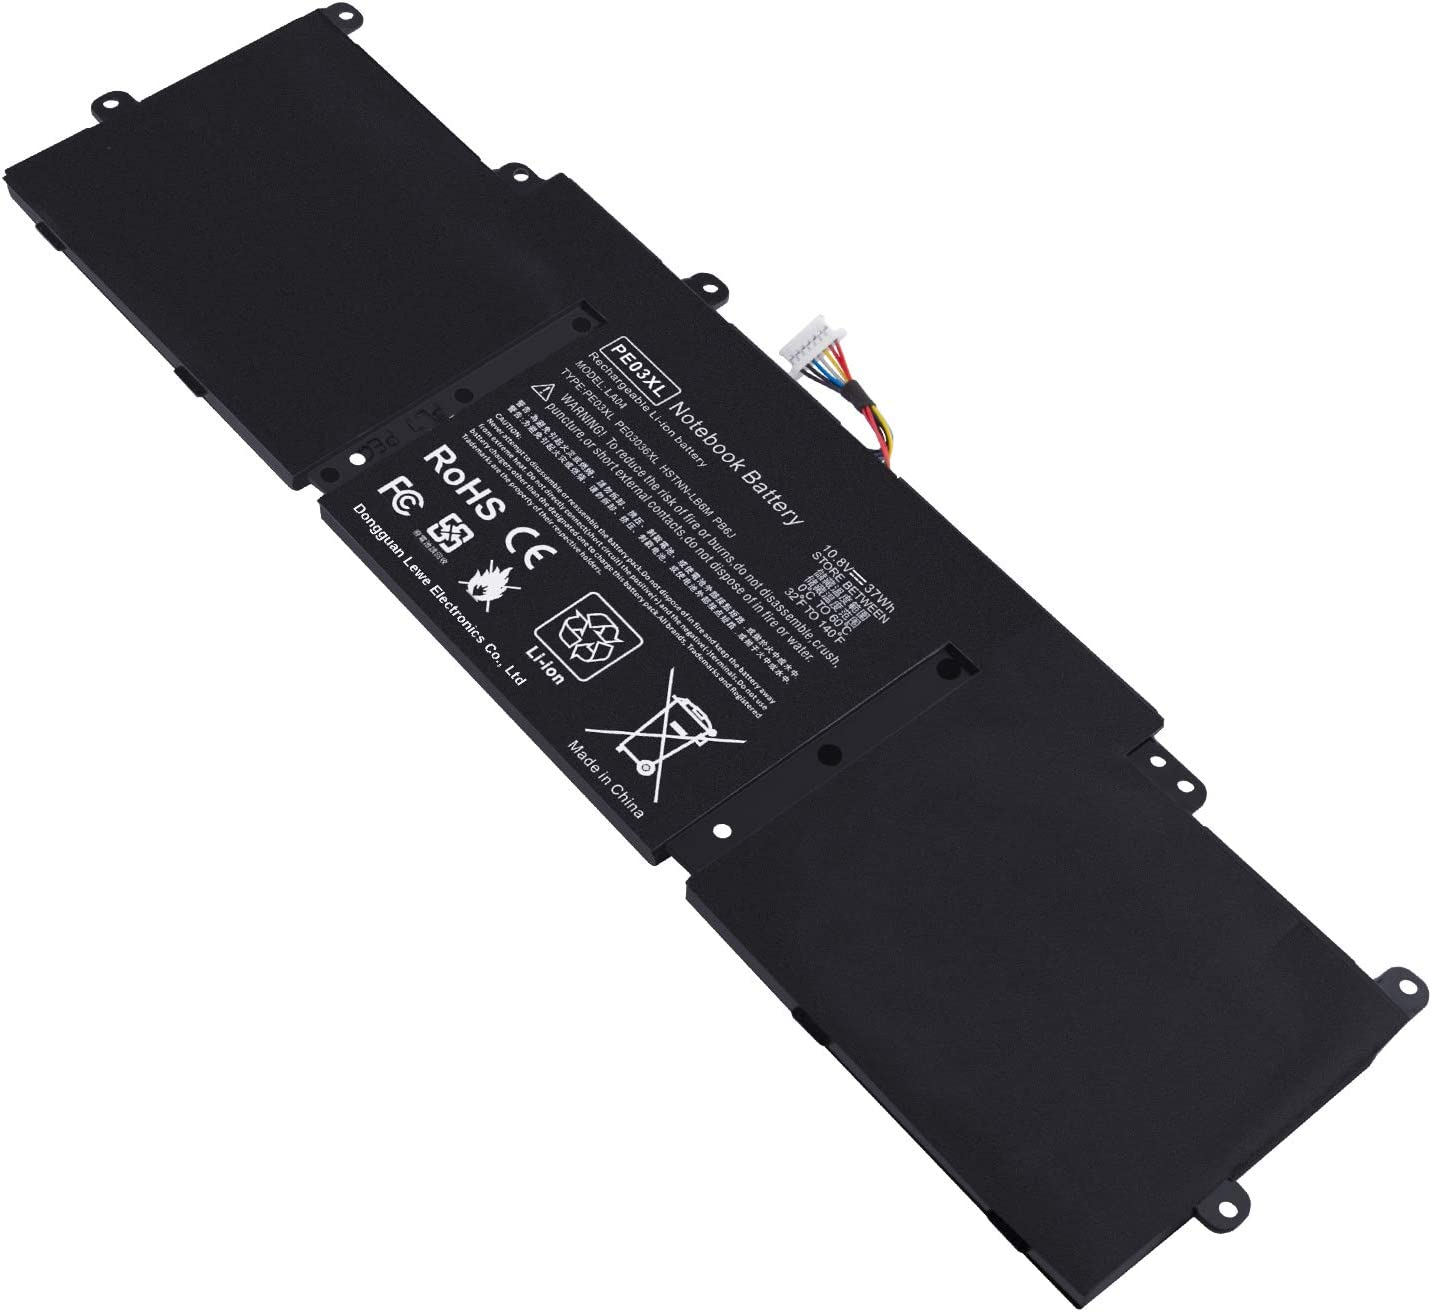 PE03 Battery for HP Chromebook 11 G3 G4 N2830 N2840 210 G1 N1C10UA N6R26AA Replace with hp Spare 766801-421 766801-851 767068-005 HSTNN-PB6J HSTNN-LB6M